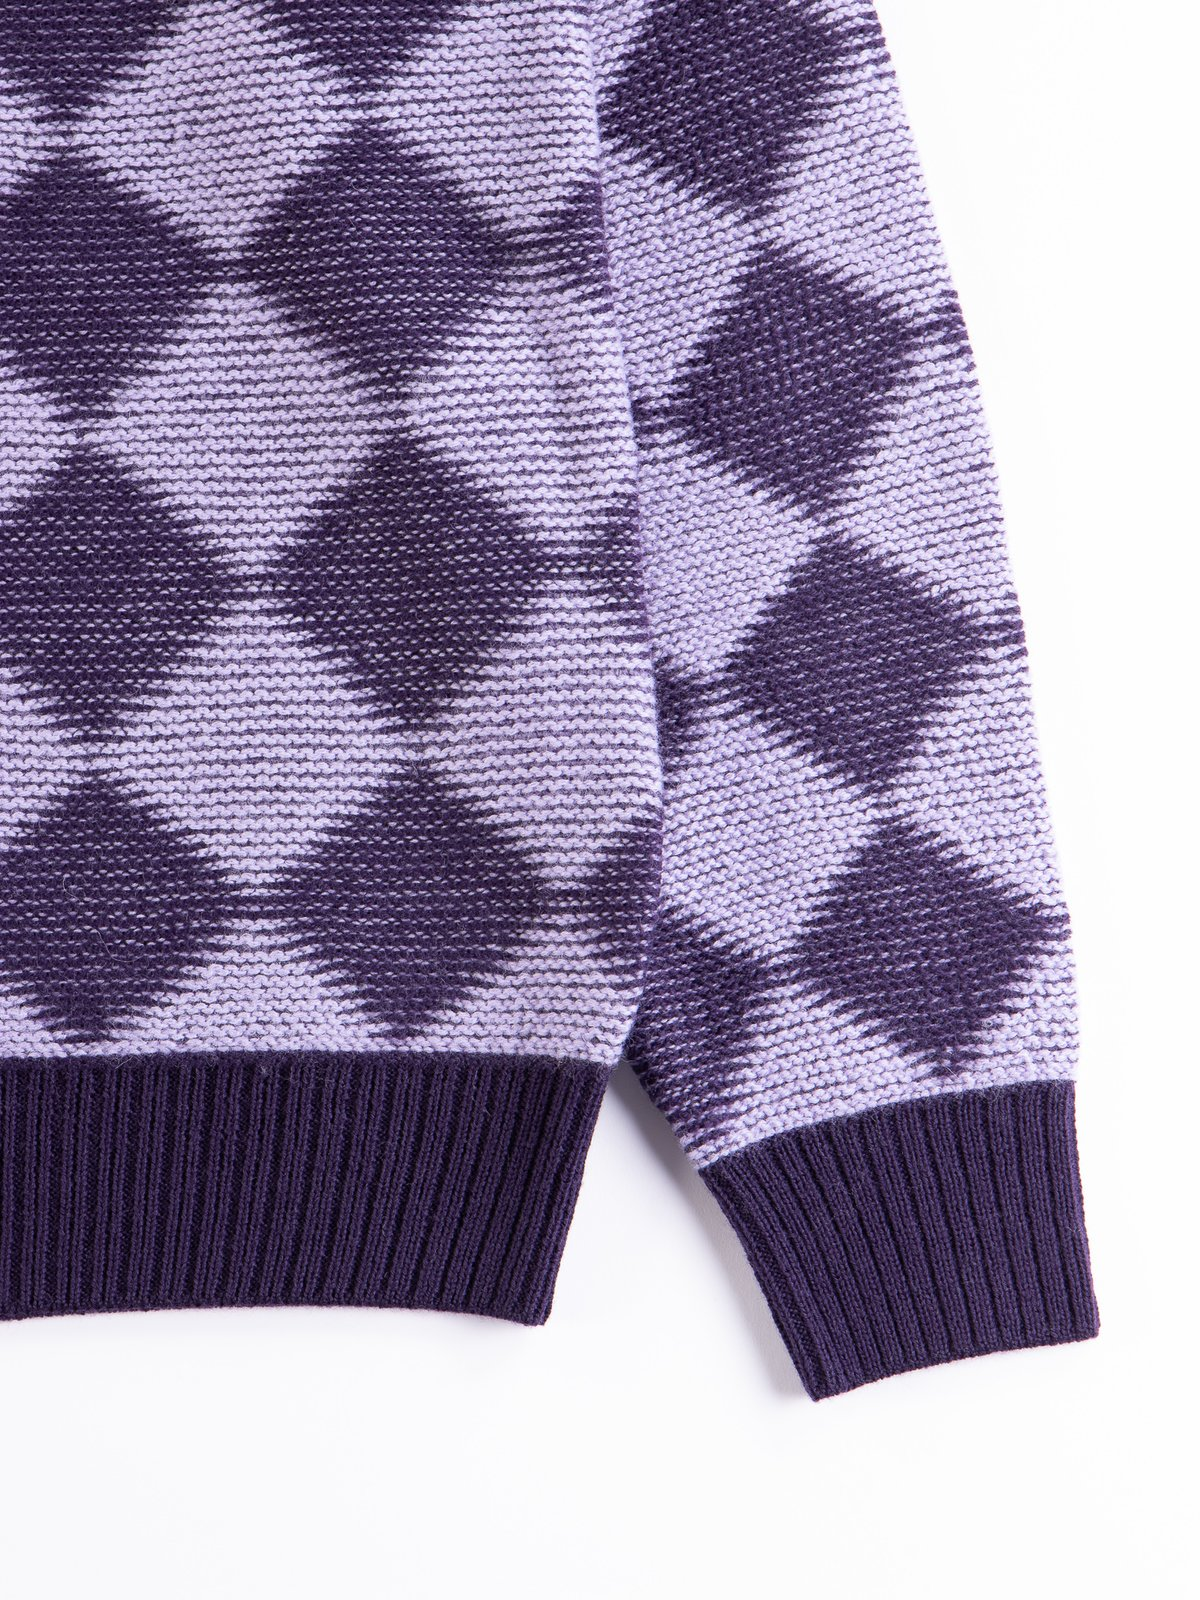 Purple Checkered Polo Sweater - Image 4